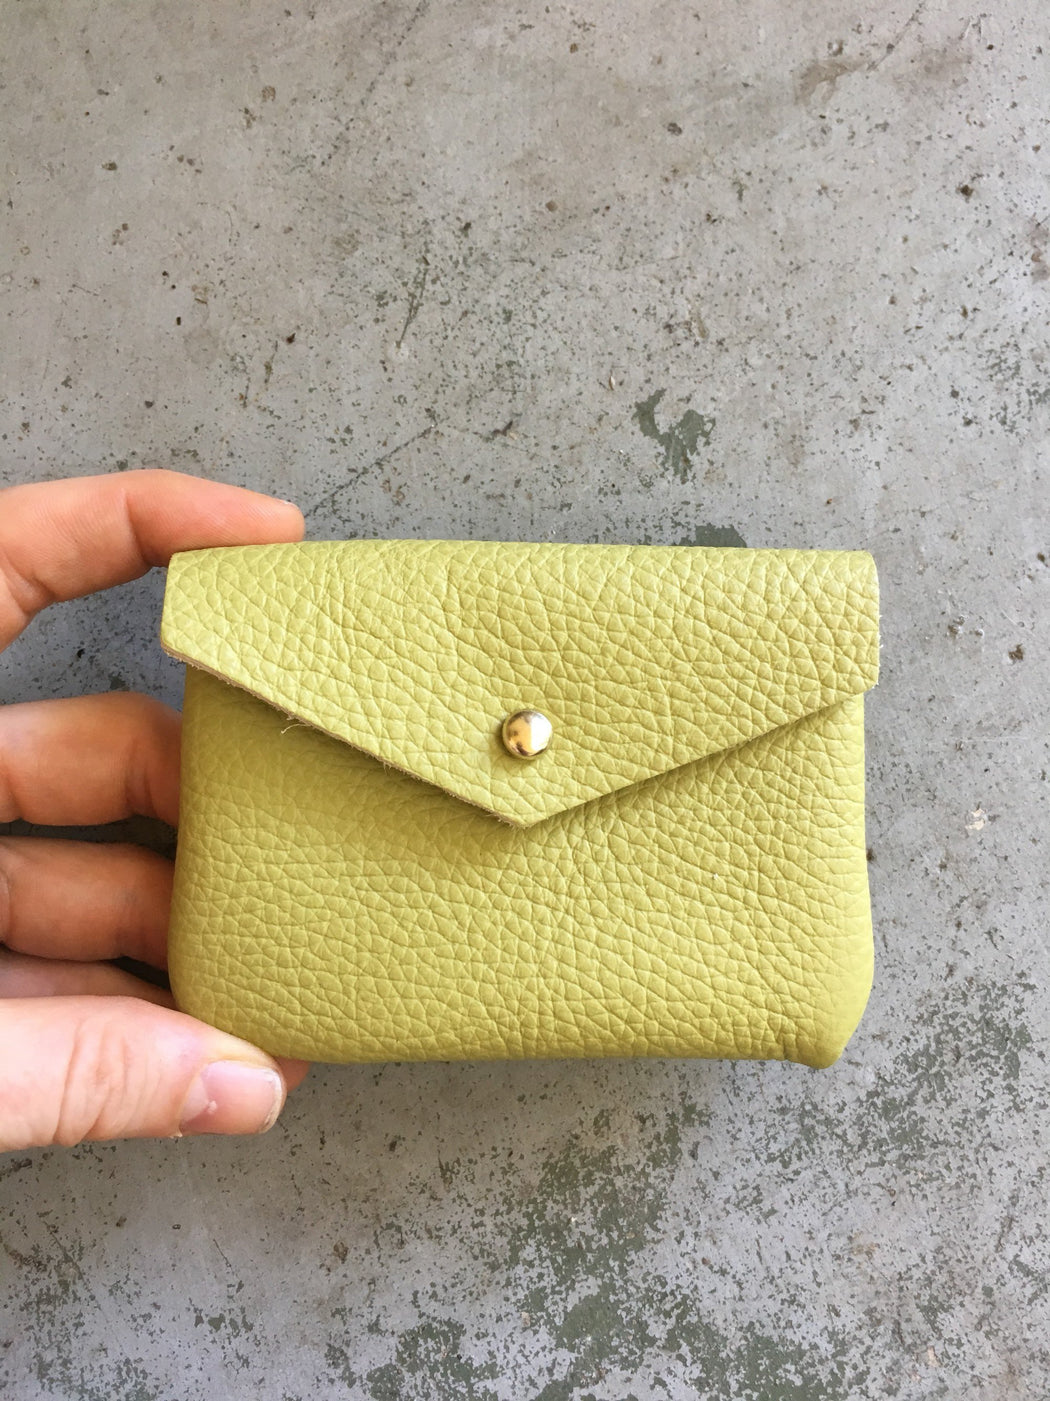 Limited Edition CARD WALLET Lime Green Leather • Business Card Holder • Credit Card Case • Woven Embossed